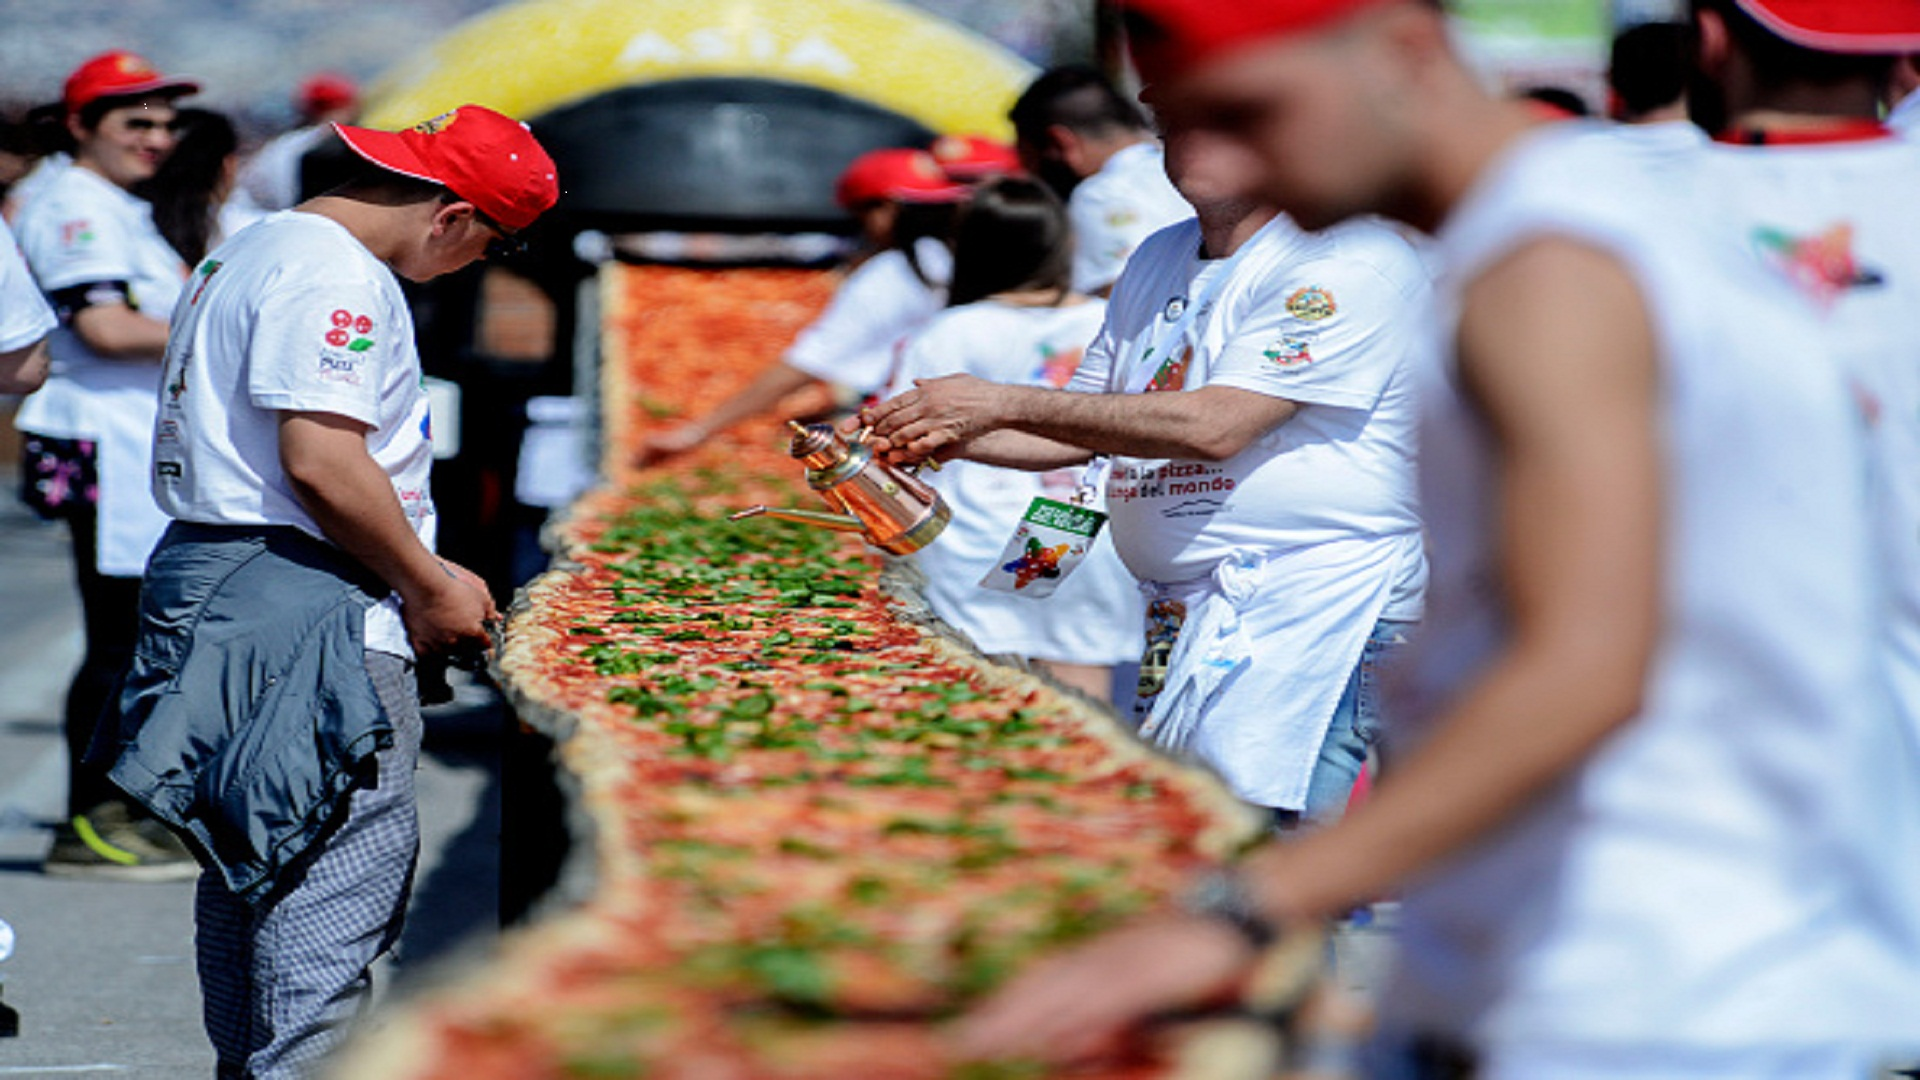 Neapolitan pizza makers attempt to make the longest pizza to break a Guinness World Record along the seafront of Naples, on May 18, 2016. For the wood-fired pizza, which measured two kilometres, they used 2,000 kg of flour, 1,600 kg of tomatoes, 2,000 kg of mozzarella, 200 litres of oil, 30kg of fresh basil. / AFP / Mario LAPORTA (Photo credit should read MARIO LAPORTA/AFP/Getty Images)